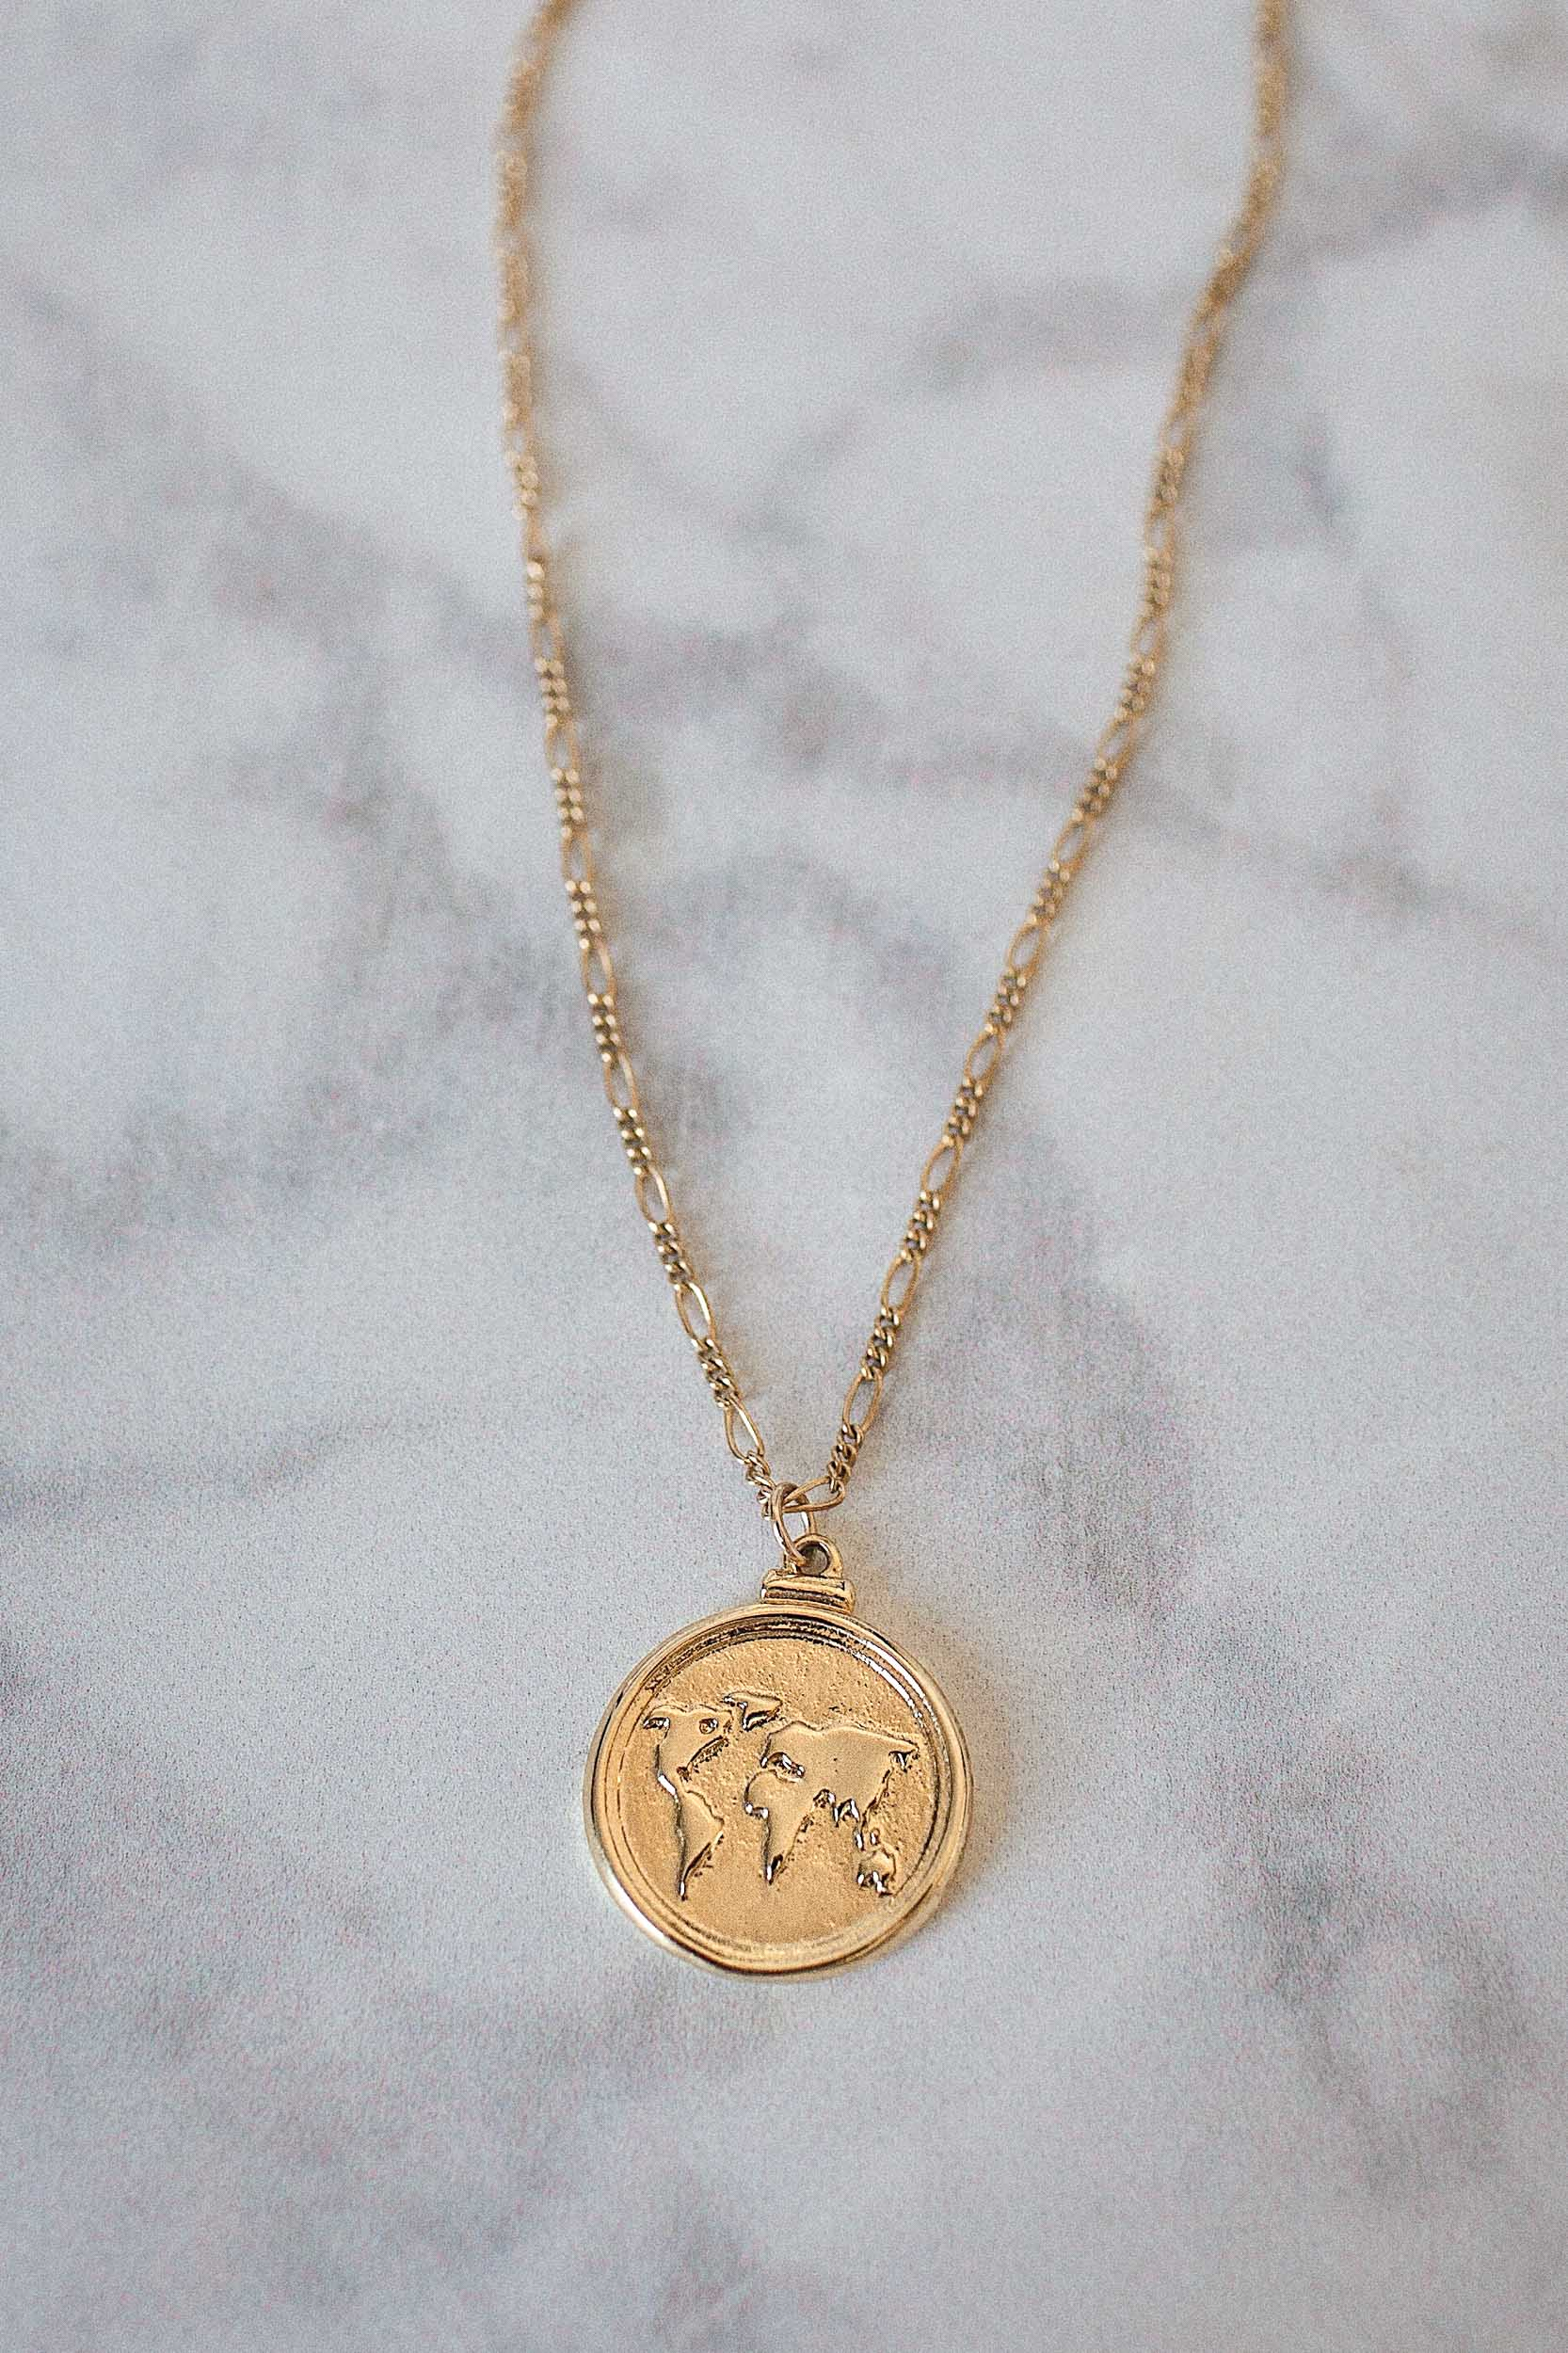 Wanderlust Necklace. Gold coin necklace. Travel jewelry.  #goldjewelry #goldnecklace #necklace #jewelrynecklaces #giftforher #giftideas #minimalistjewelry #layerednecklace